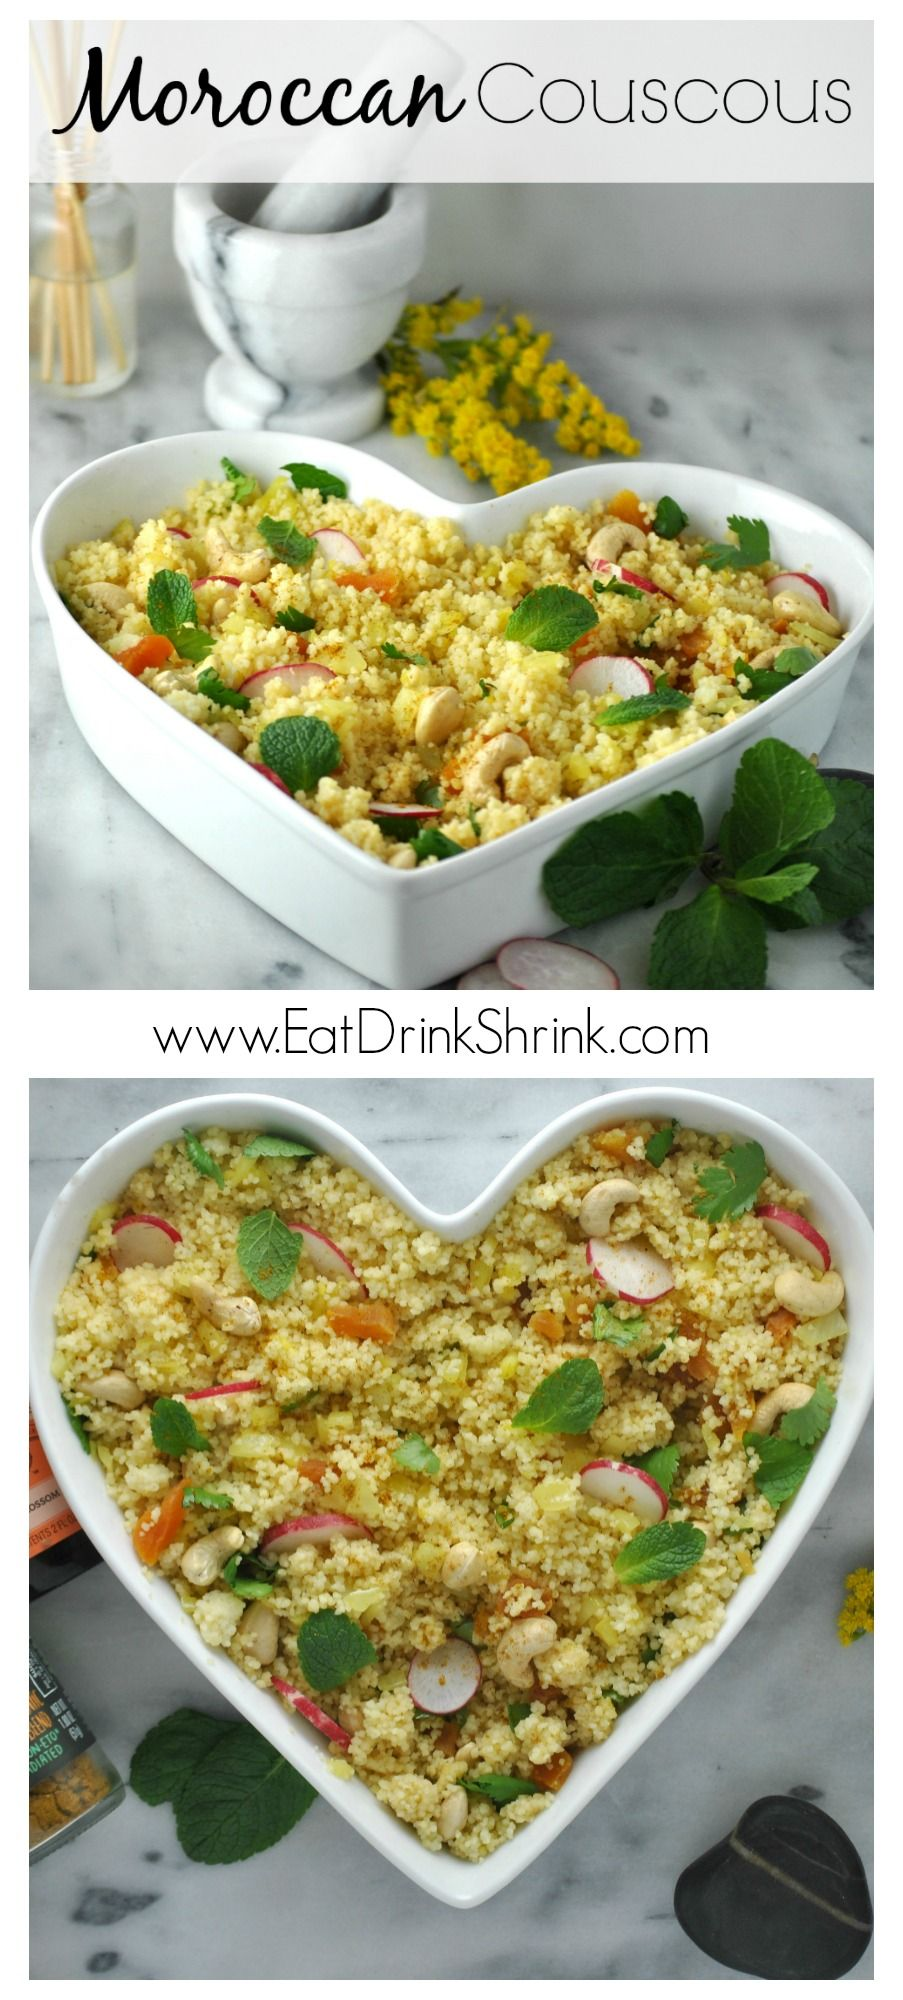 Vegan Moroccan Cous Cous with Rose Water, cashews and Mint